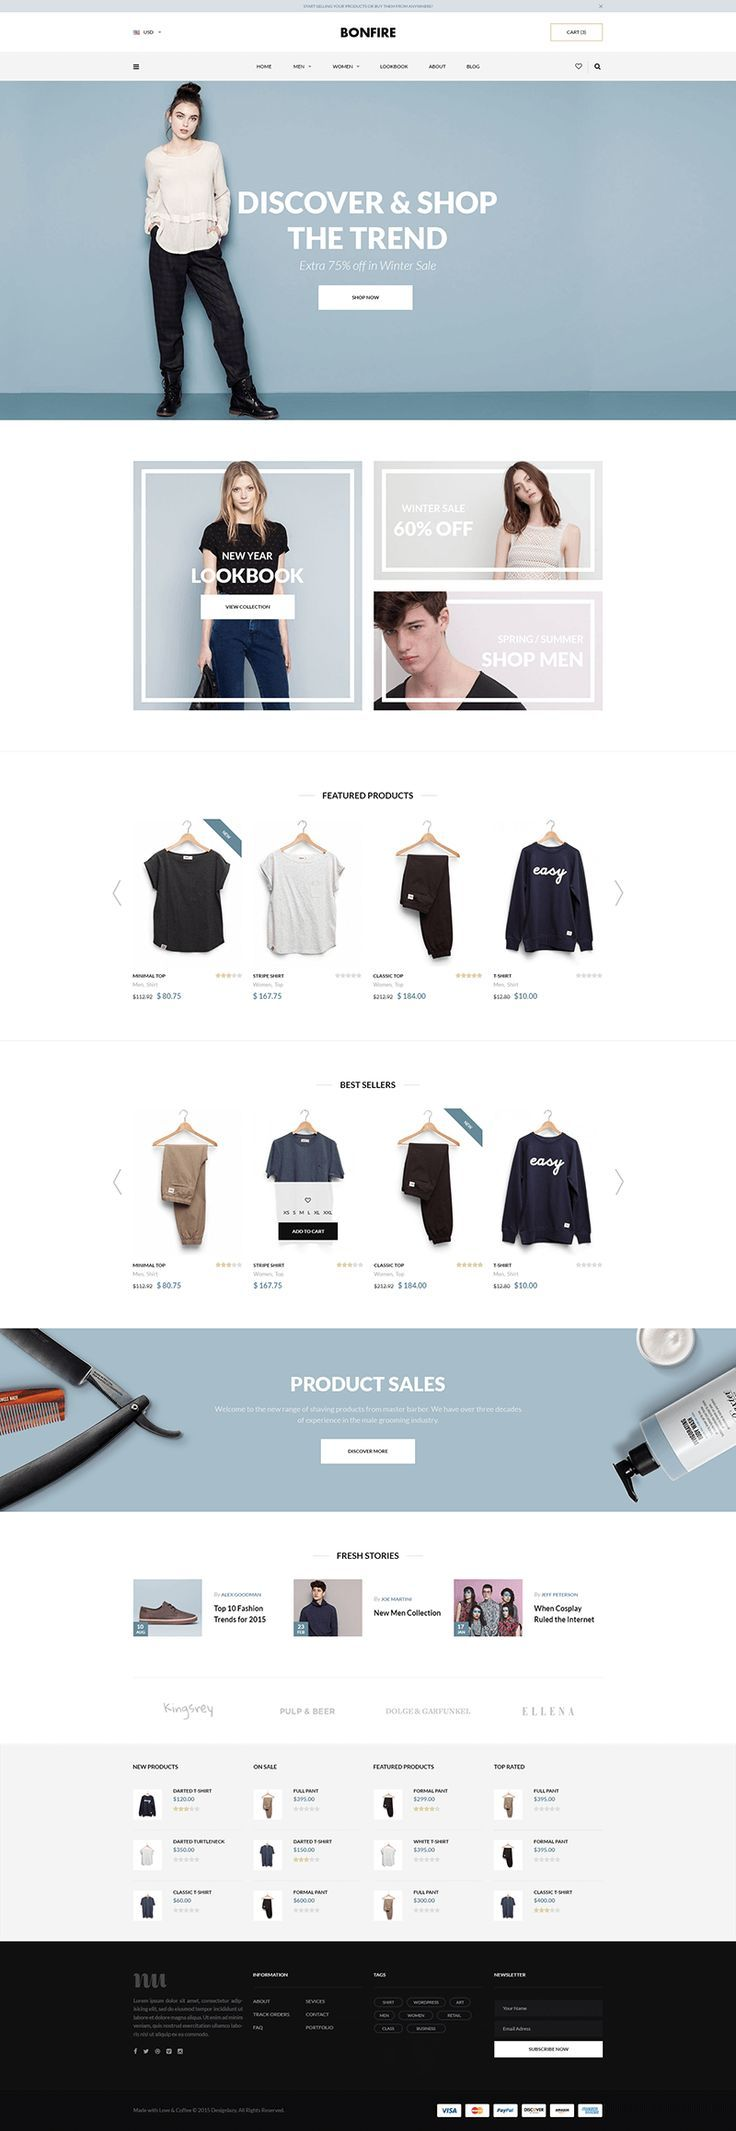 Website store idea. E-commerce. Opus Online.